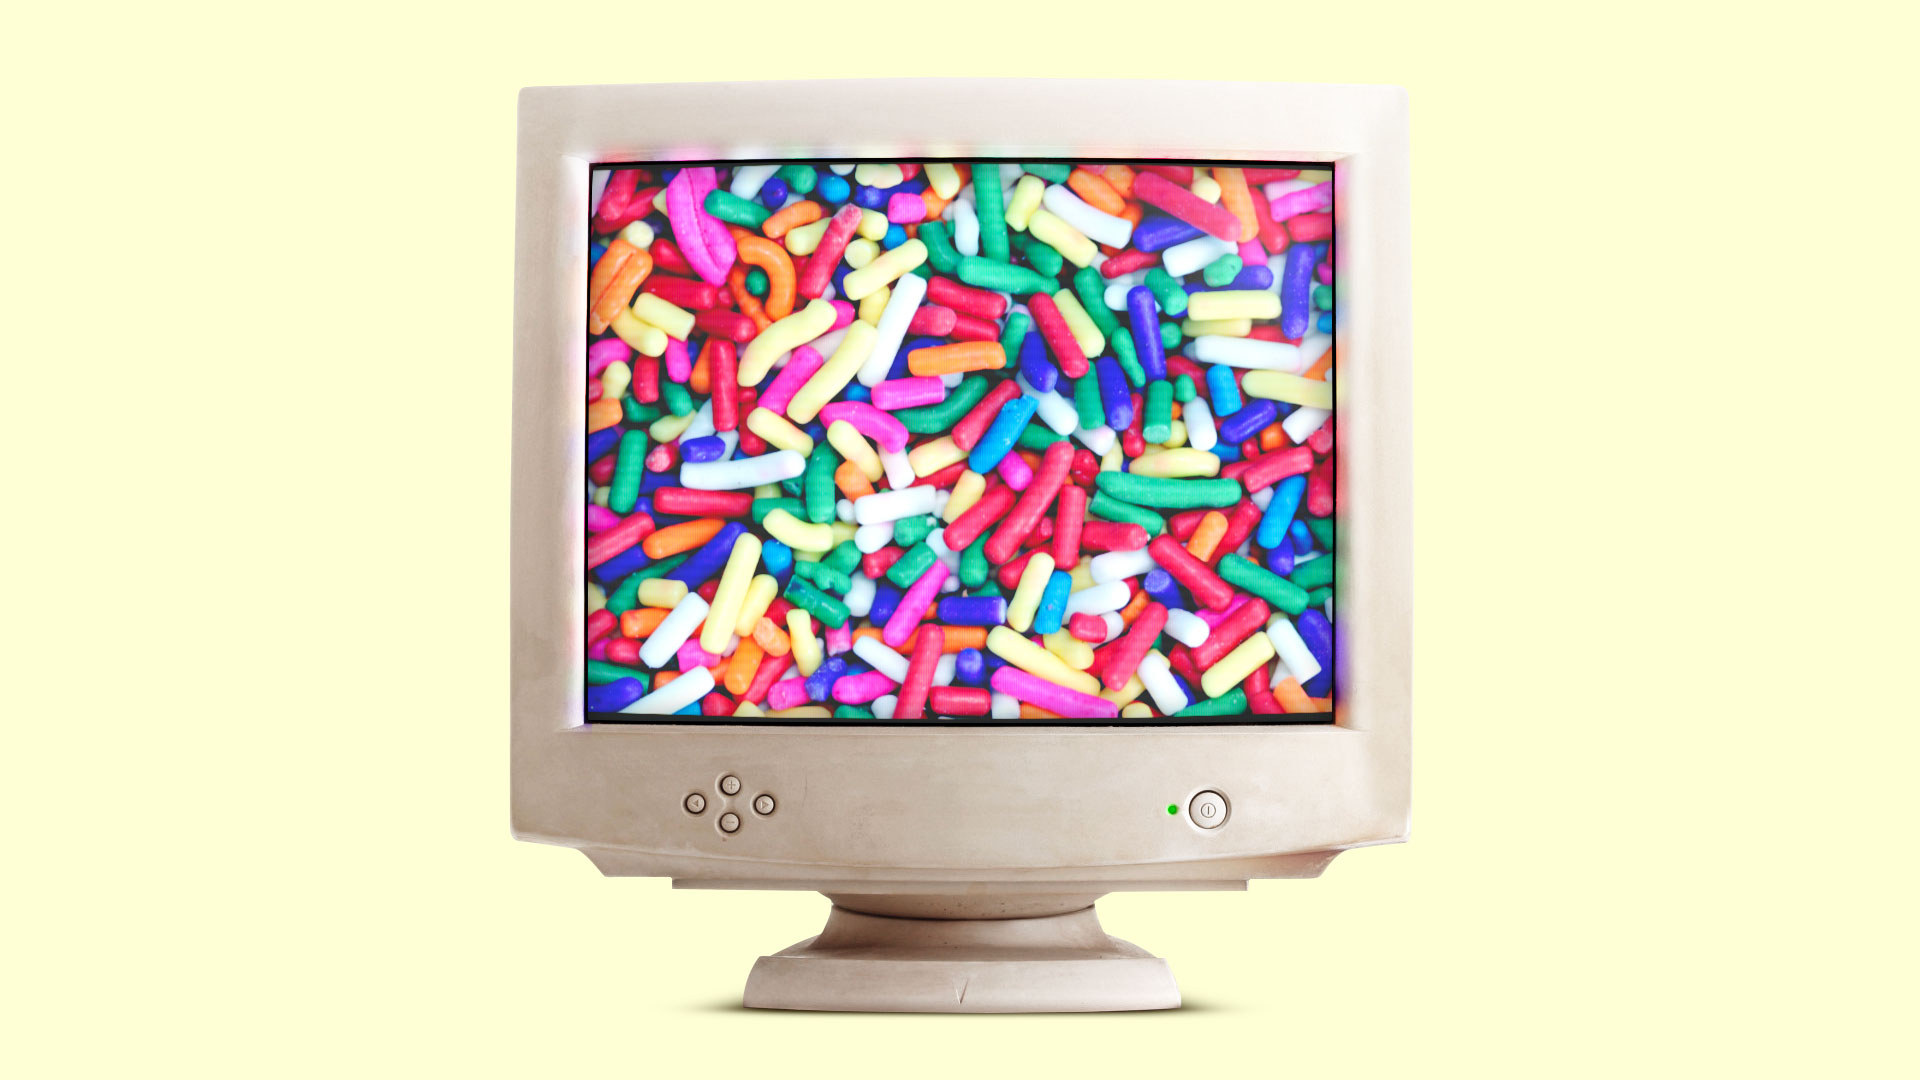 An old computer monitor displays a close-up shot of colorful candy sprinkles.